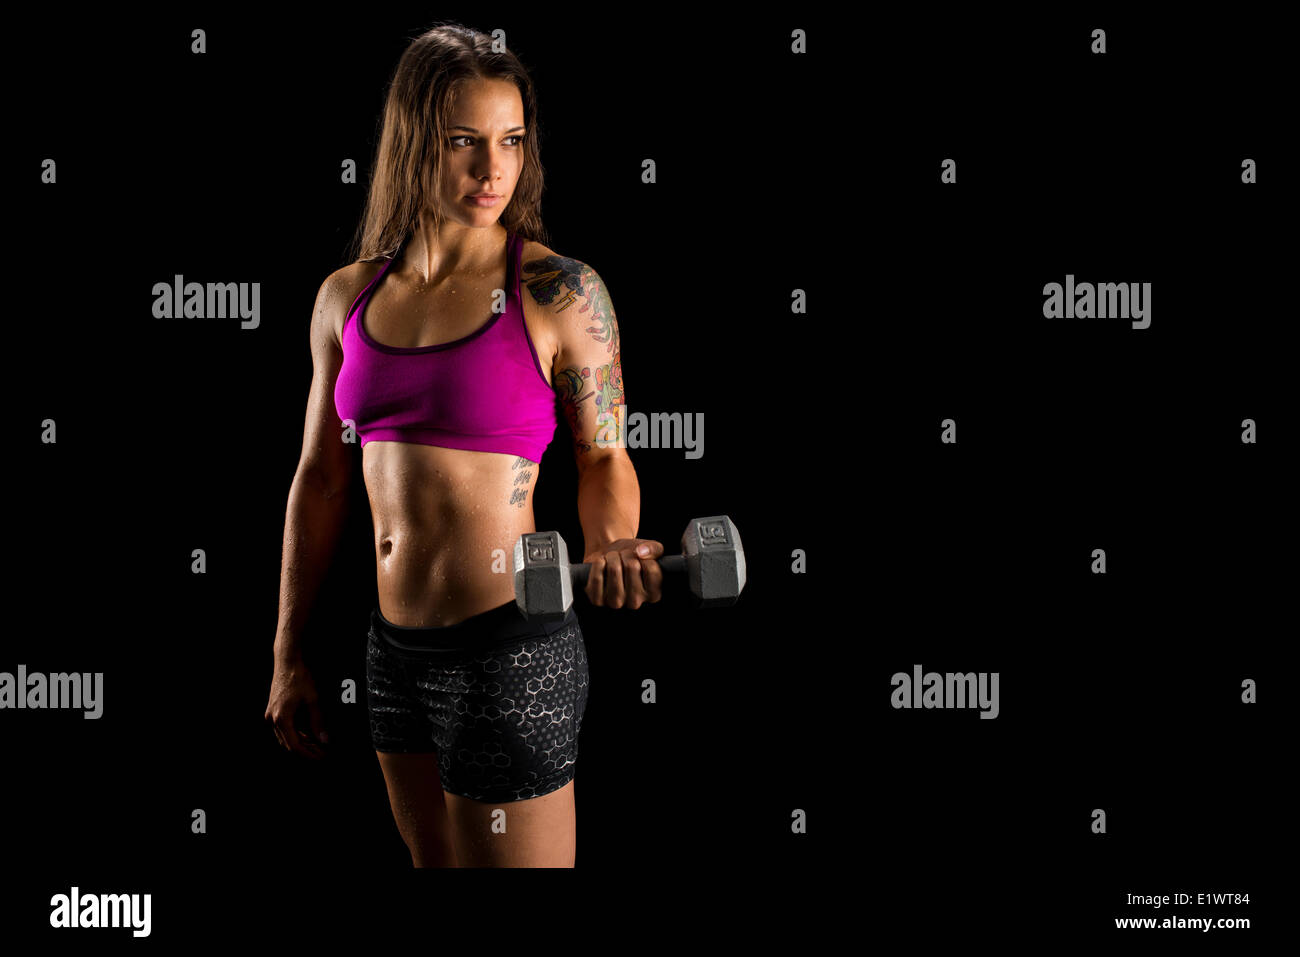 Fit athletic woman working out with dumbell - Stock Image